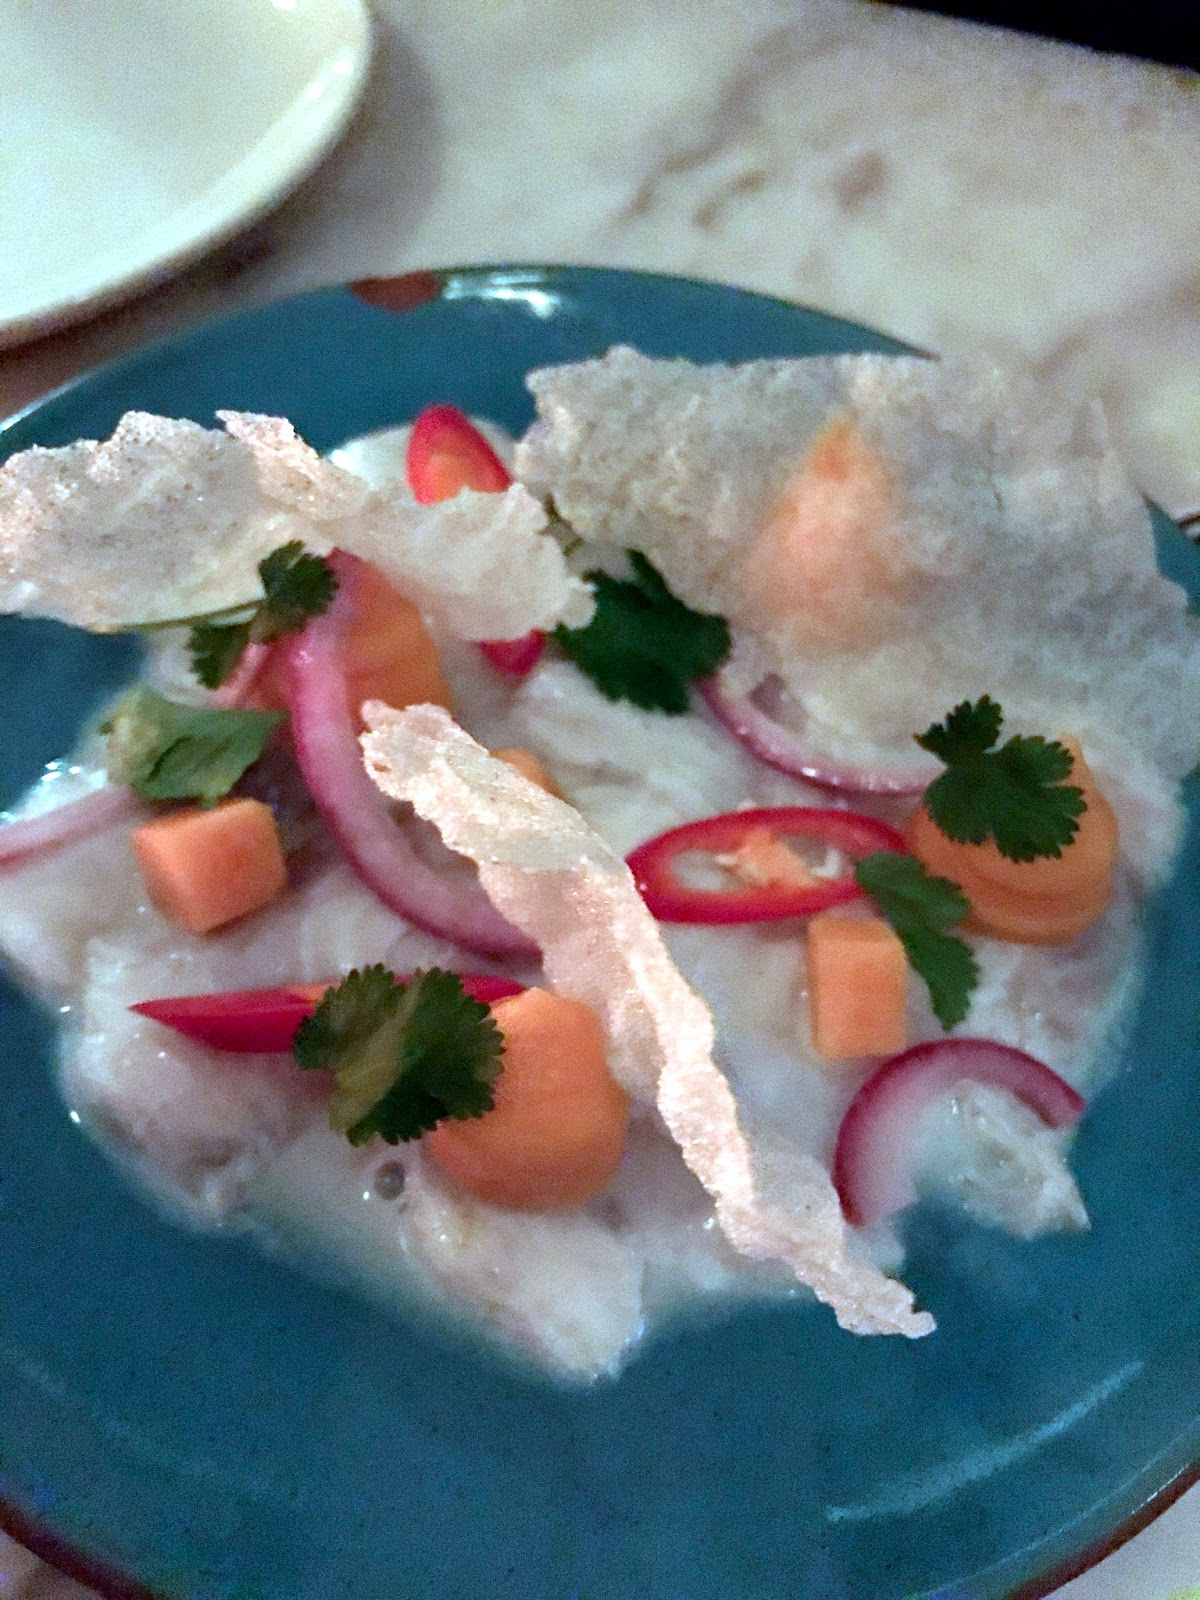 Stitch & Bear - Amsterdam - Philipino ceviche at Dum Dum Palace